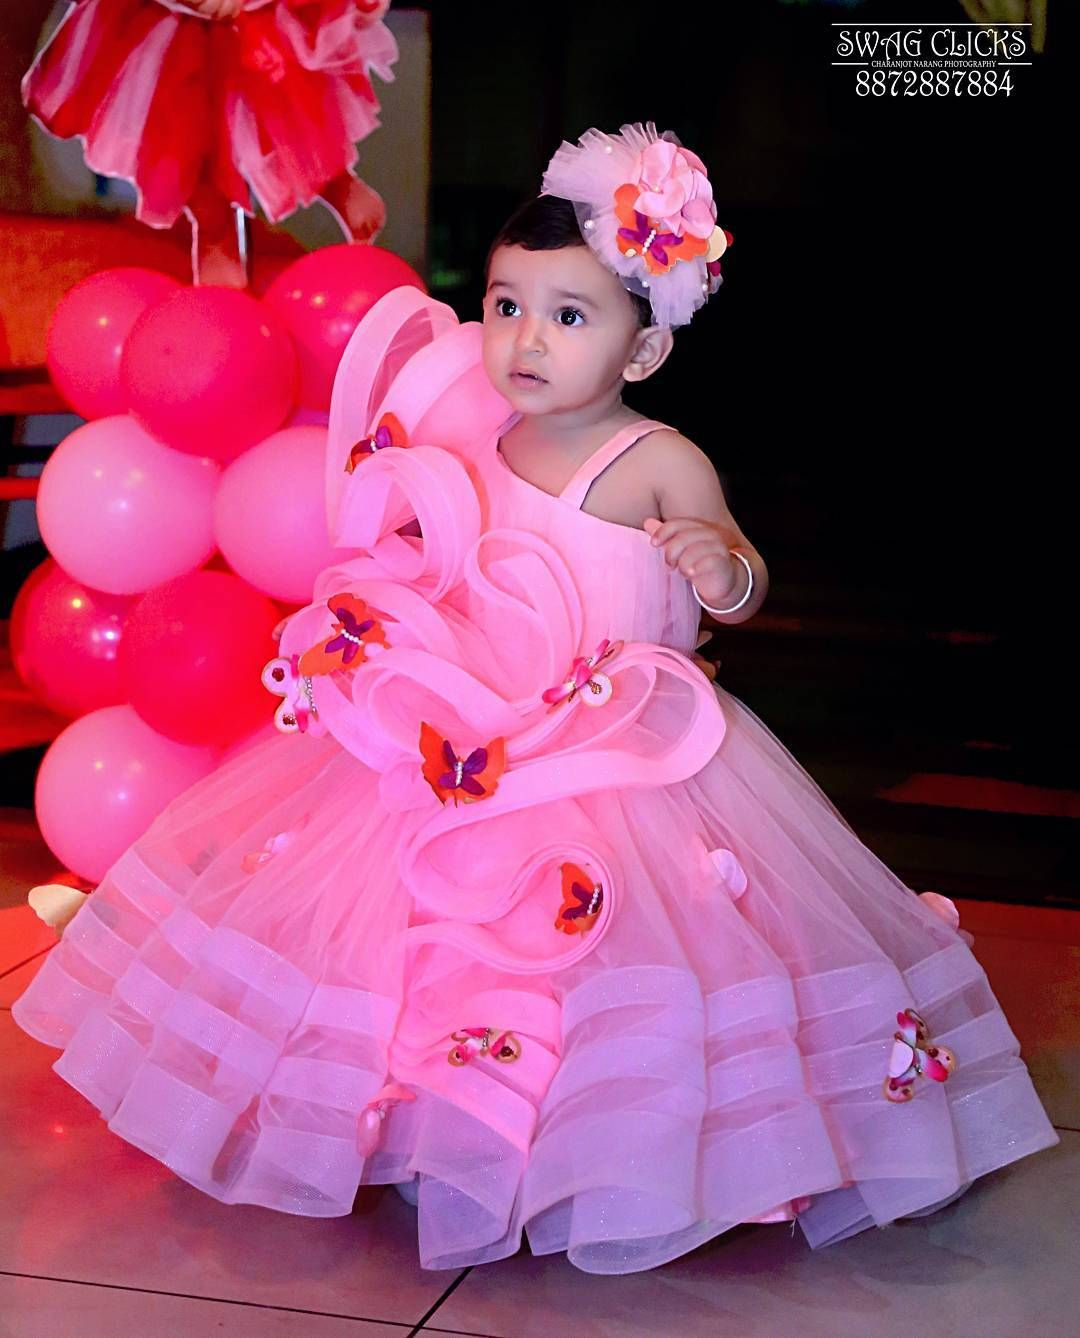 Baby Girl Princess Dress Ideas for Memorable Photoshoot - K7